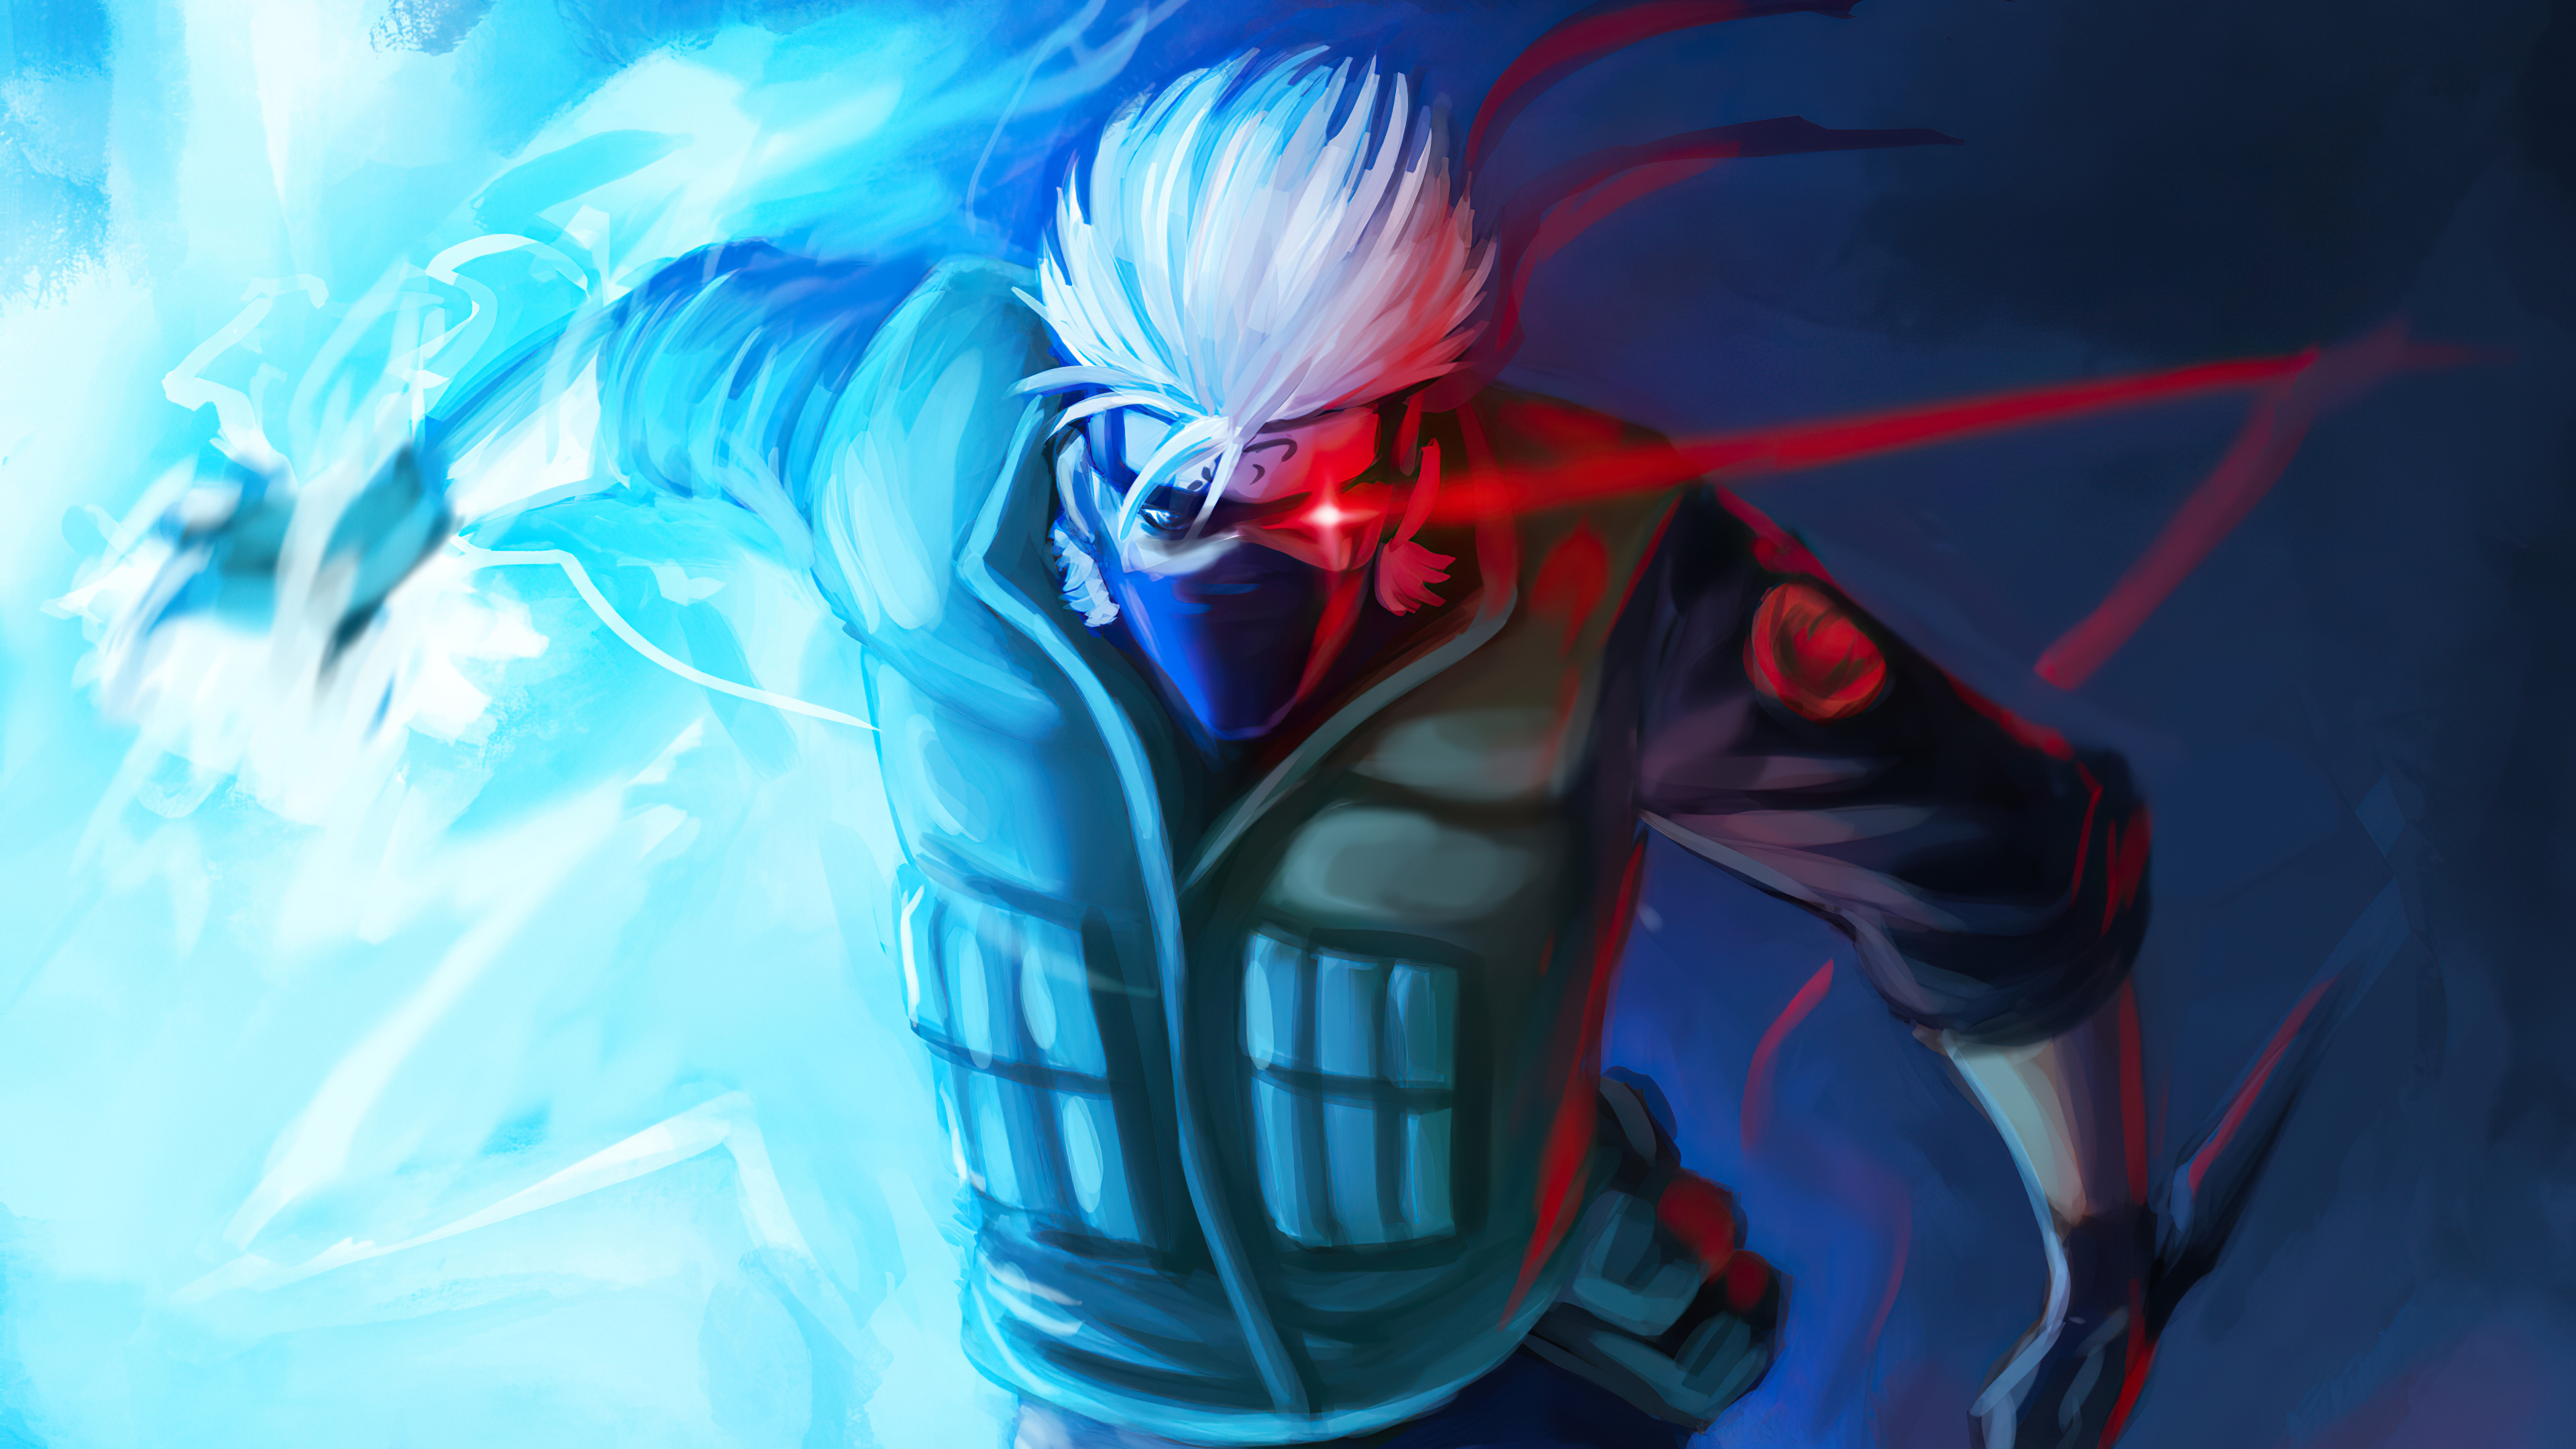 1125x2436 Kakashi 4k Iphone Xs Iphone 10 Iphone X Hd 4k Wallpapers Images Backgrounds Photos And Pictures